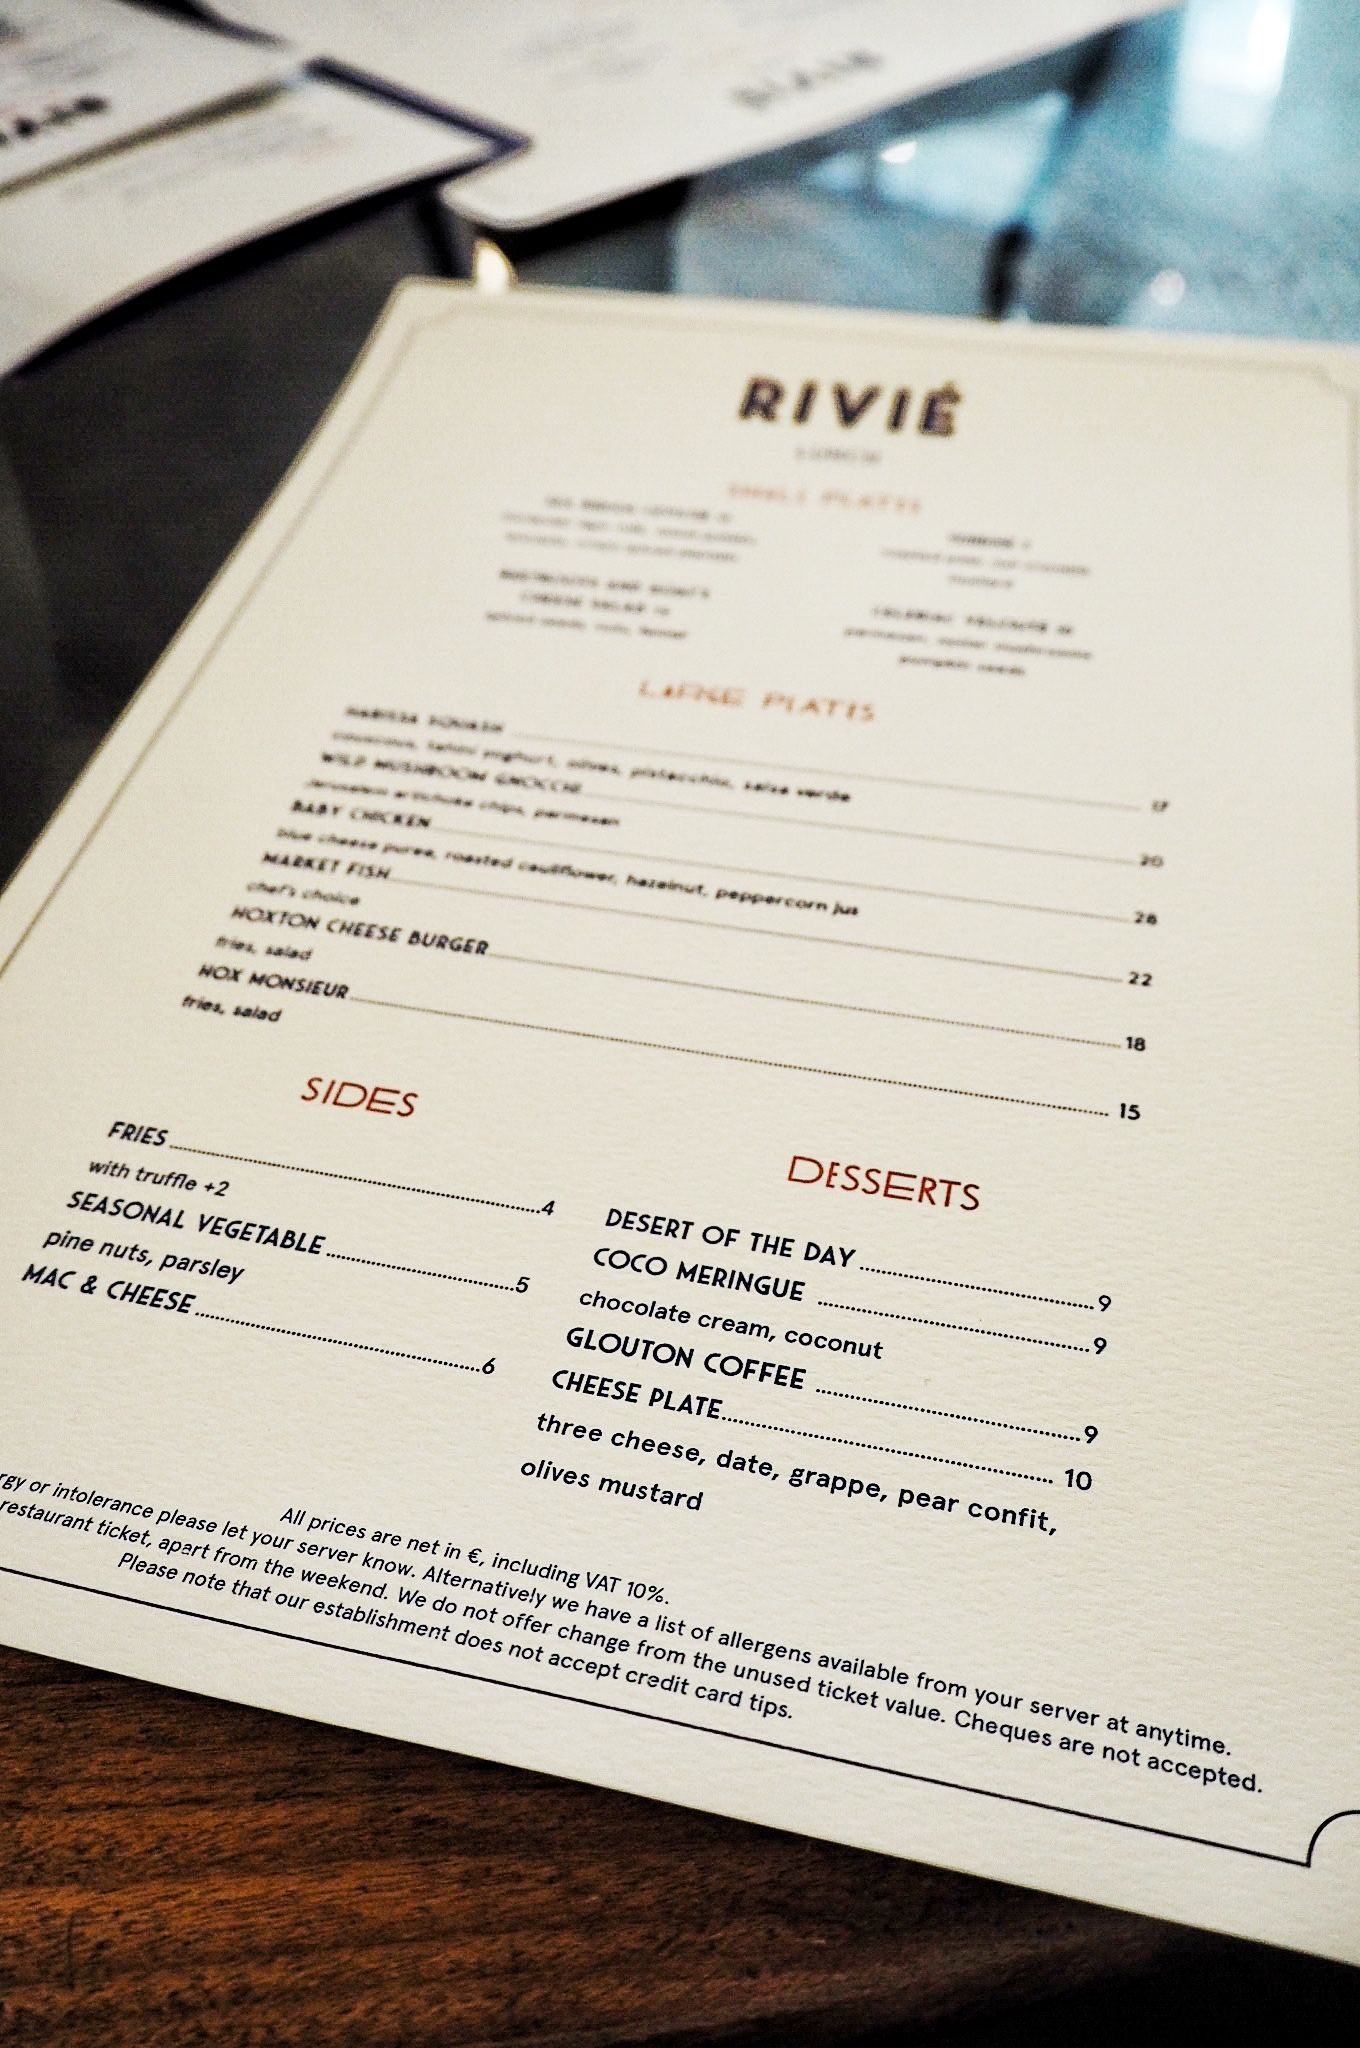 Rivie Restaurant Menu Hoxton Hotel Paris